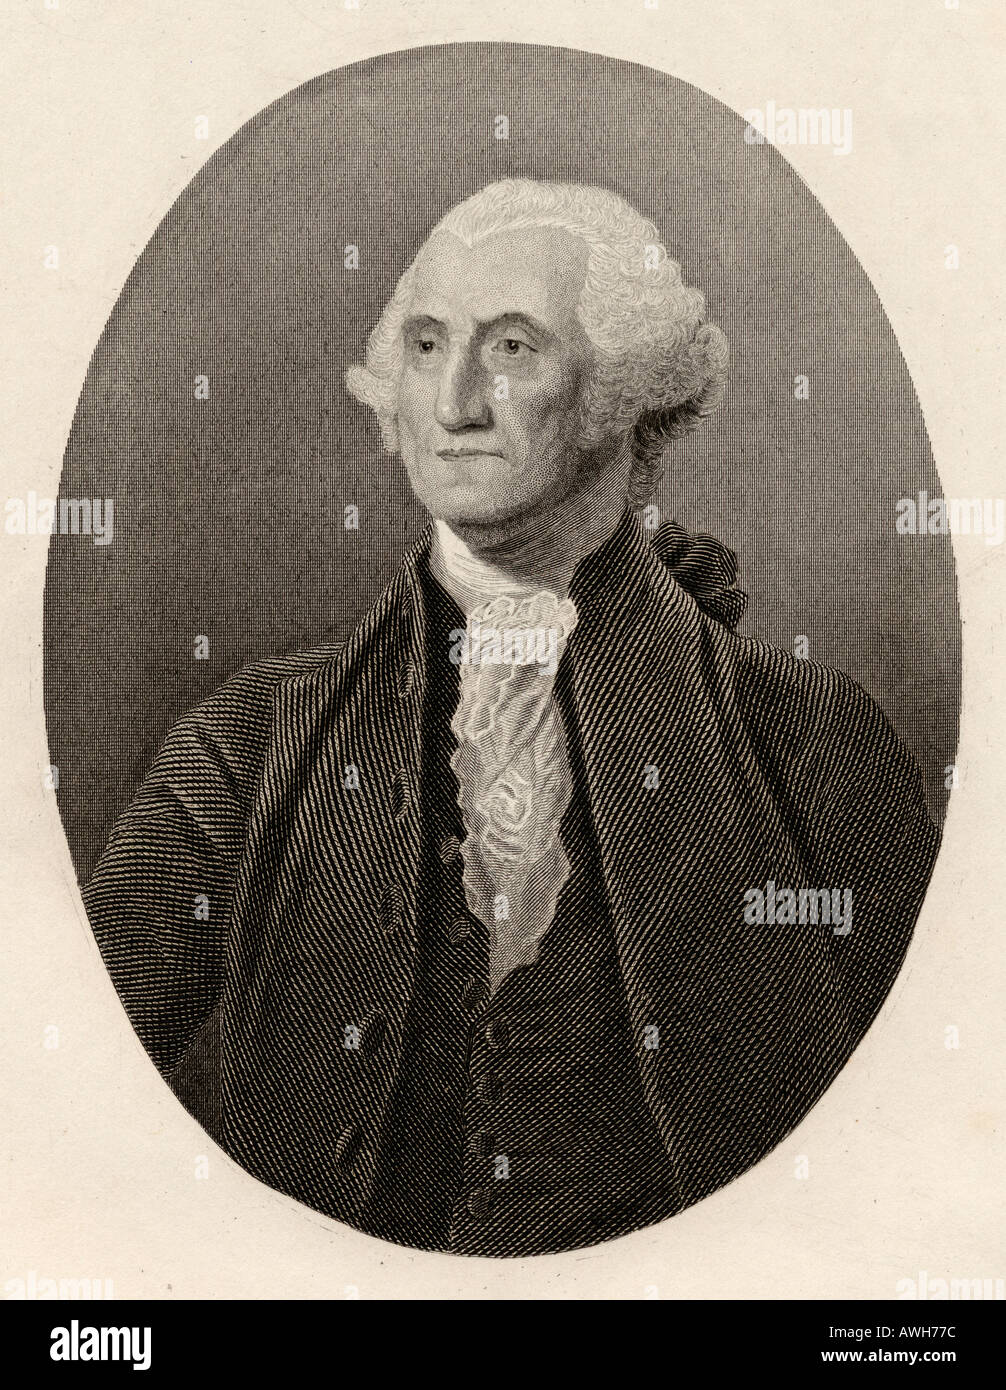 George Washington, 1732 - 1799.  American political leader, military general, statesman, and Founding Father.  First President of the United States. - Stock Image